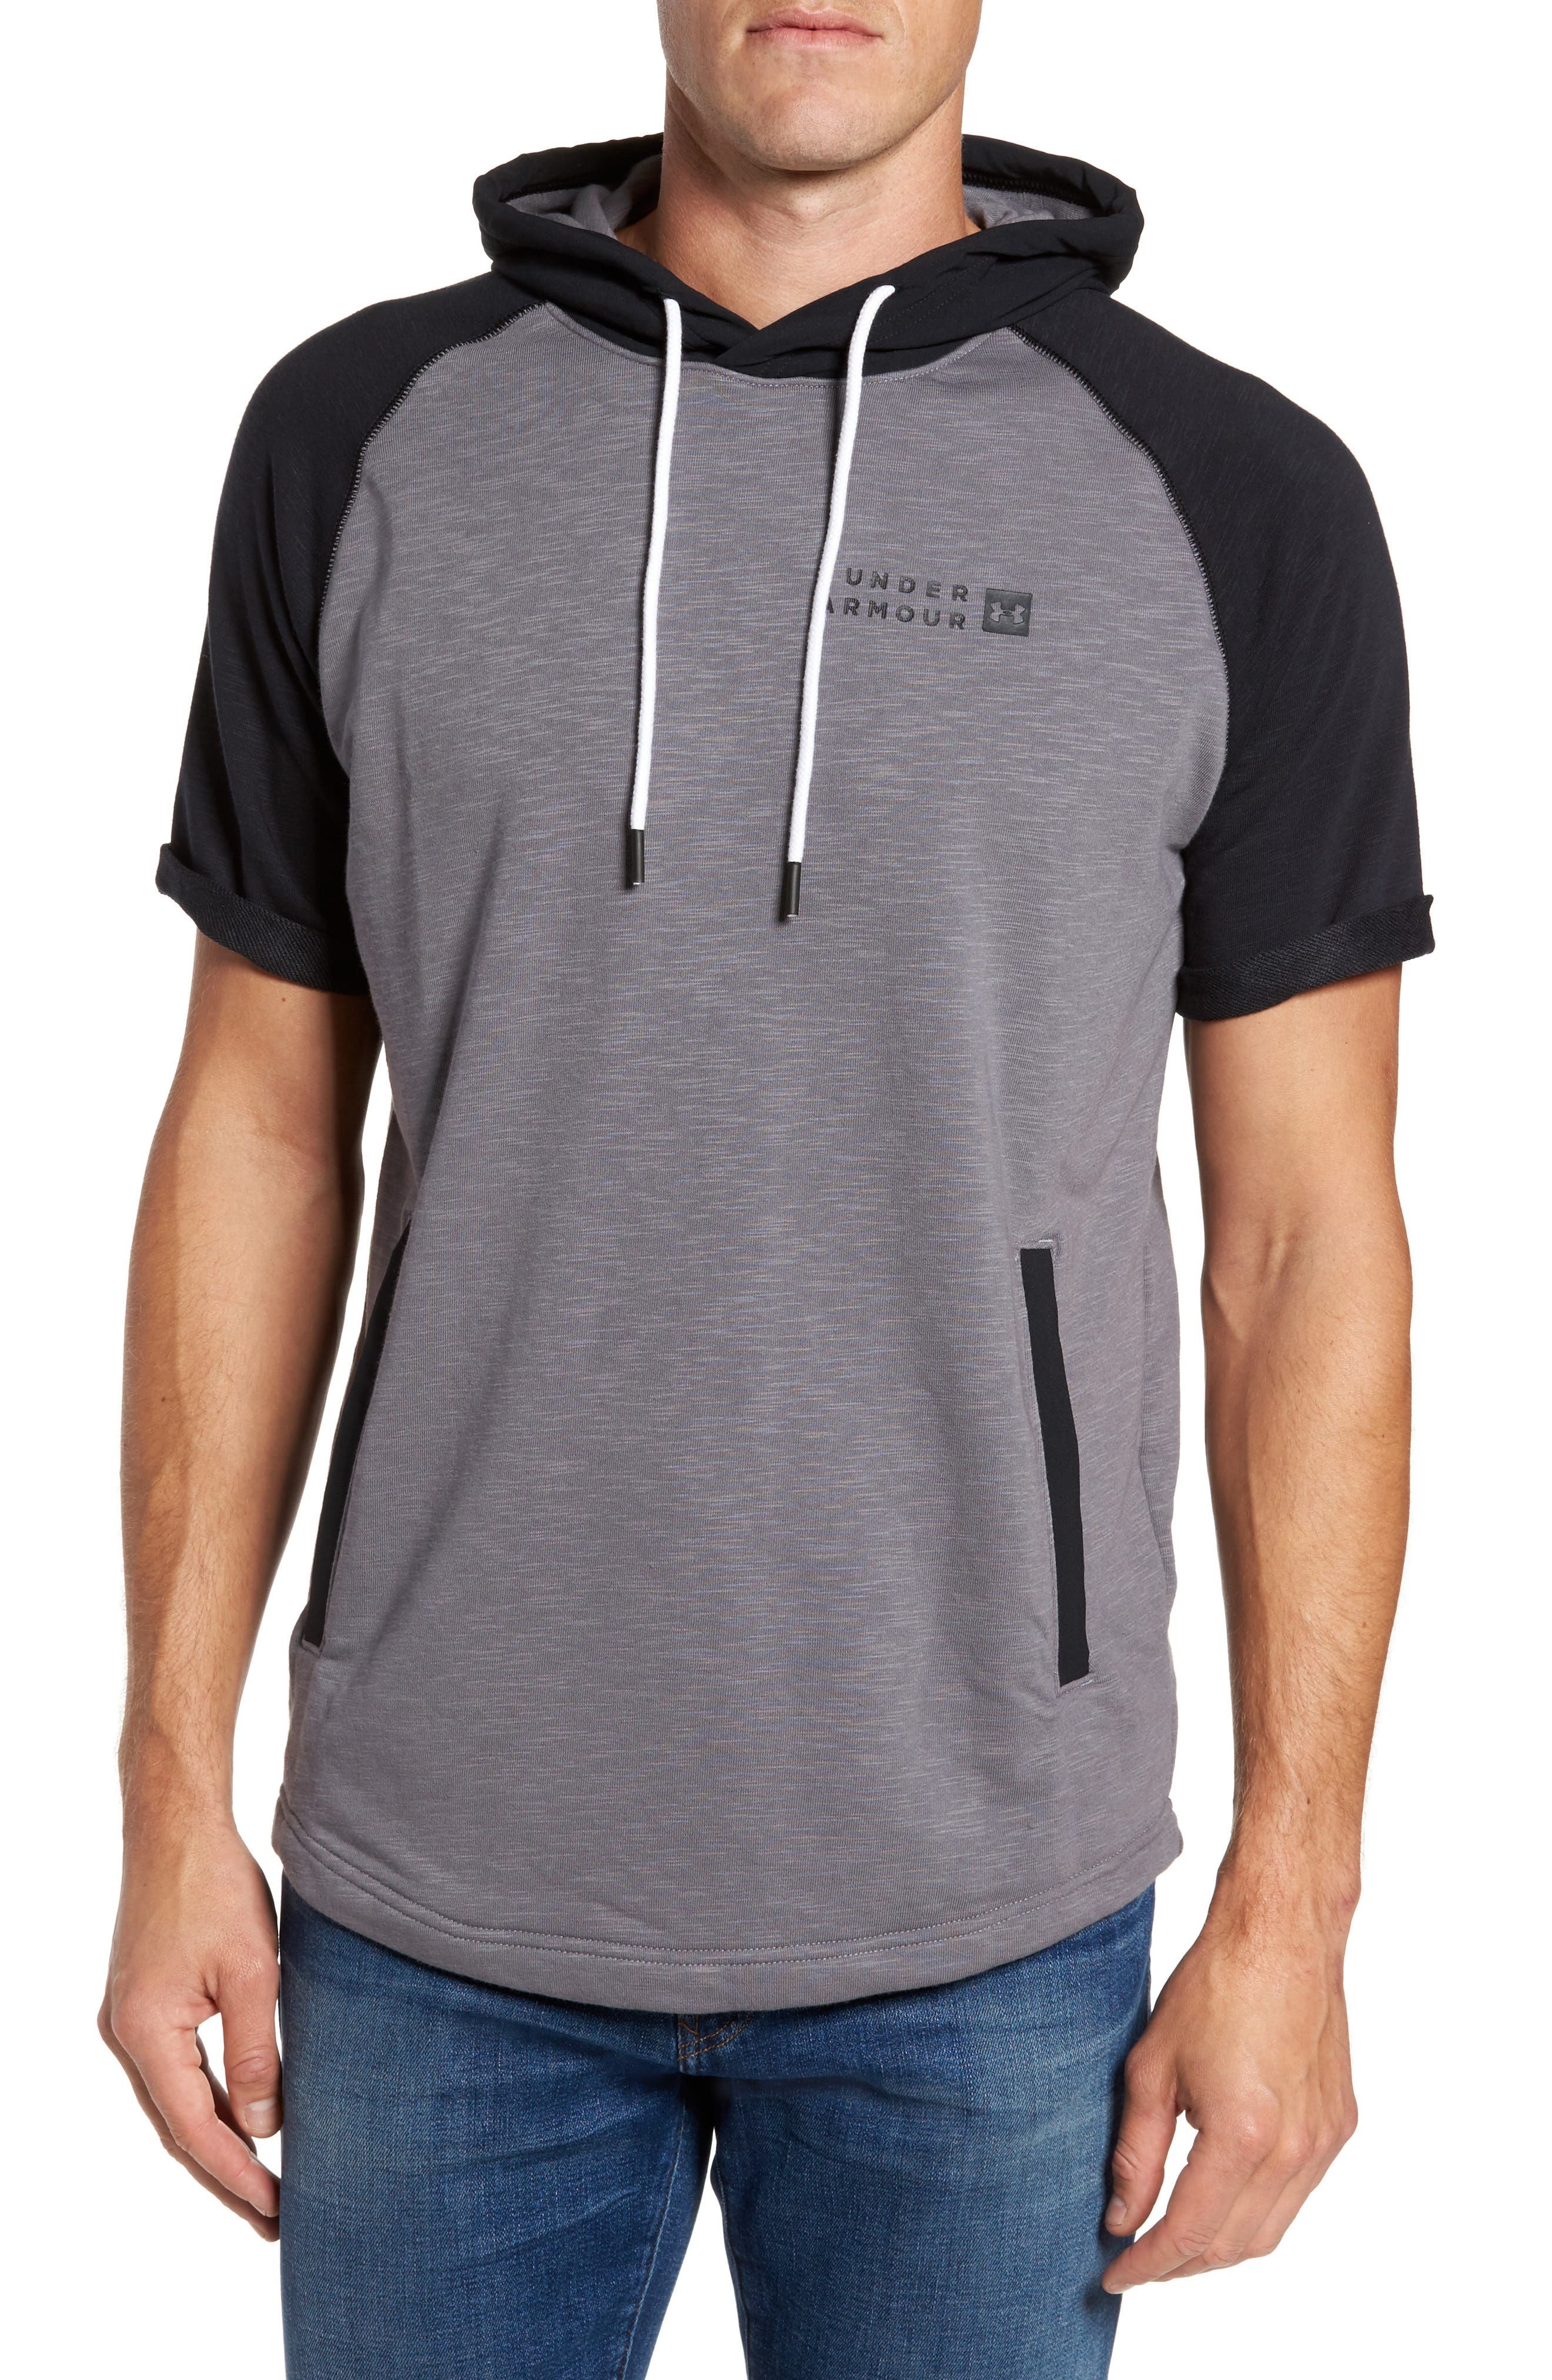 Main Image - Under Armour Sportstyle Short Sleeve Hoodie